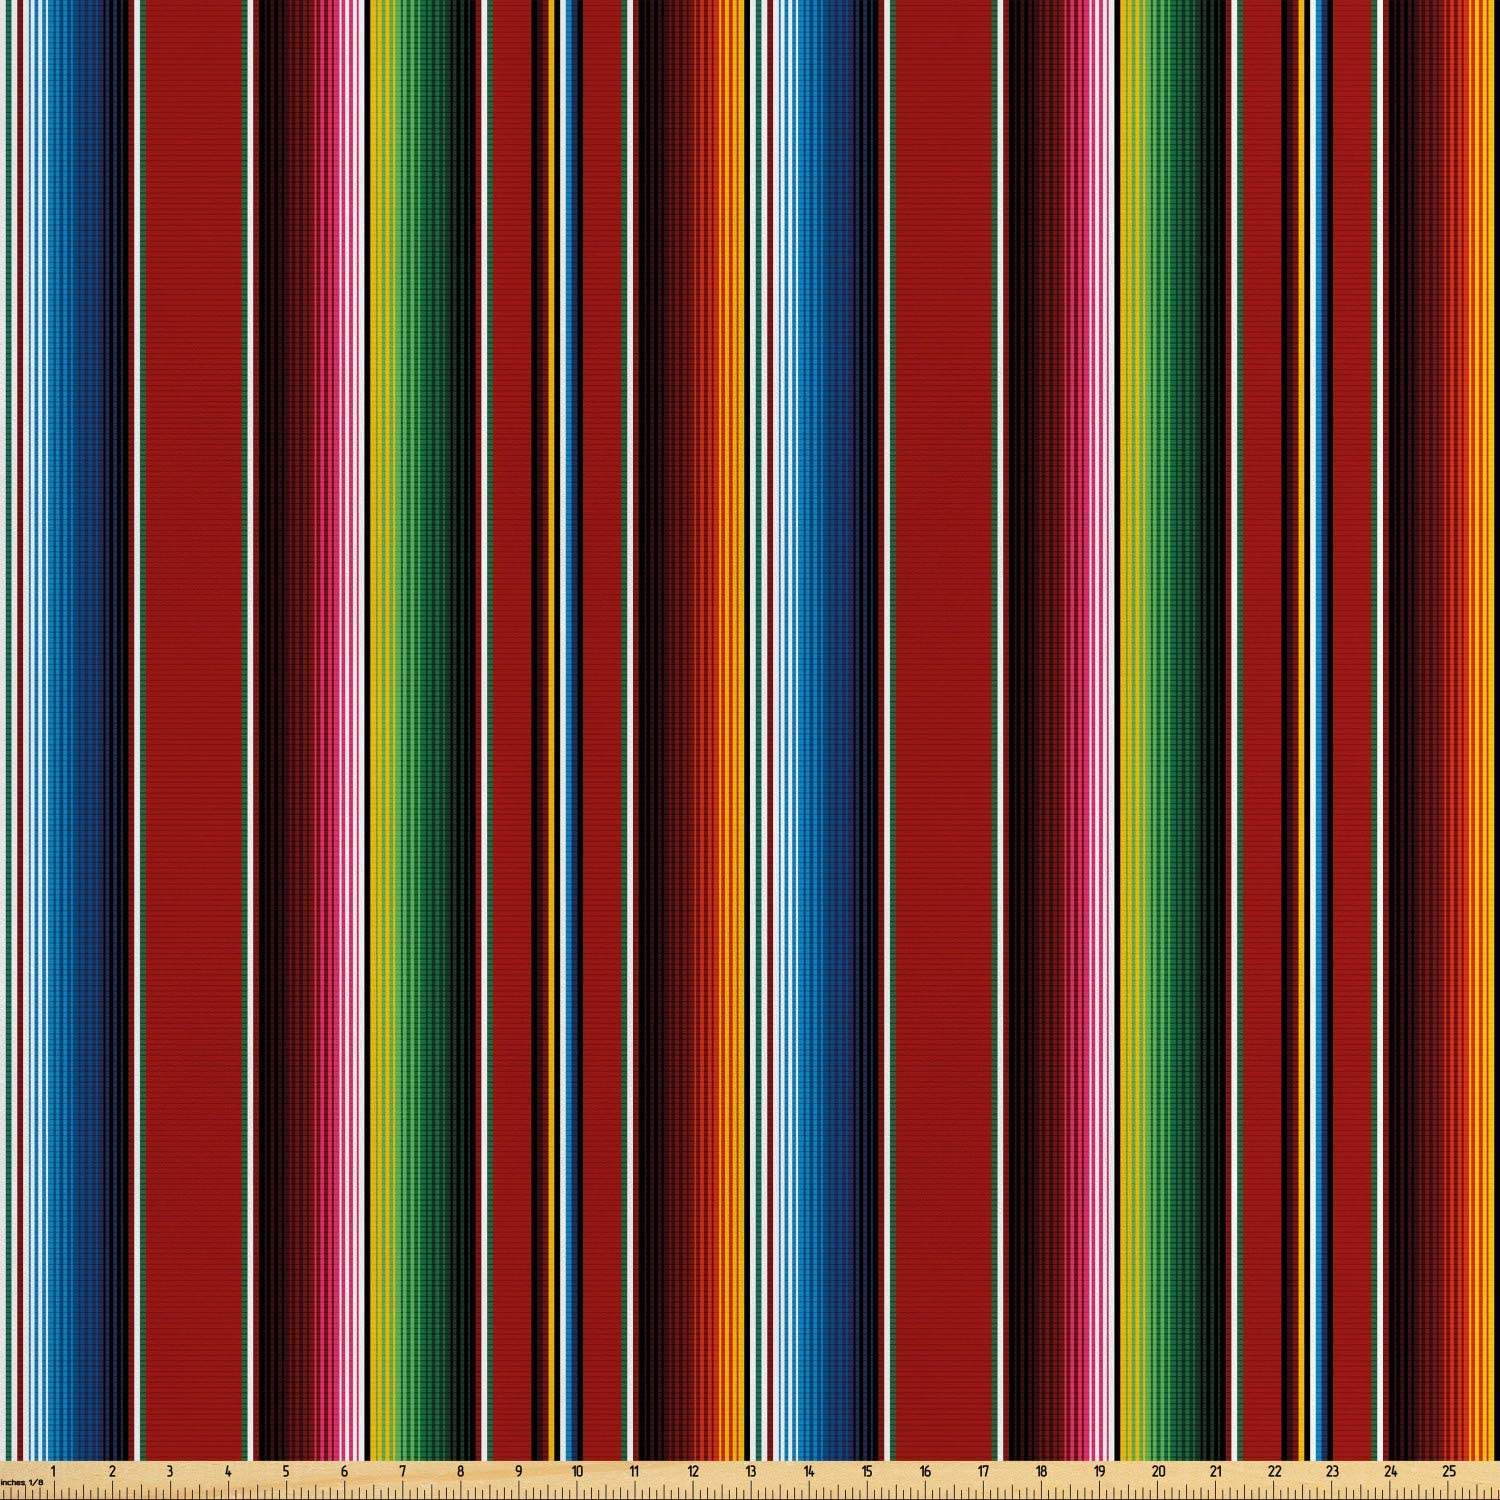 Ambesonne Cinco de Mayo Fabric by The Yard, Mexican Serape Colorful Stripes Vertical Lines Latino Design Illustration, Decorative Satin Fabric for Home Textiles and Crafts, Multicolor